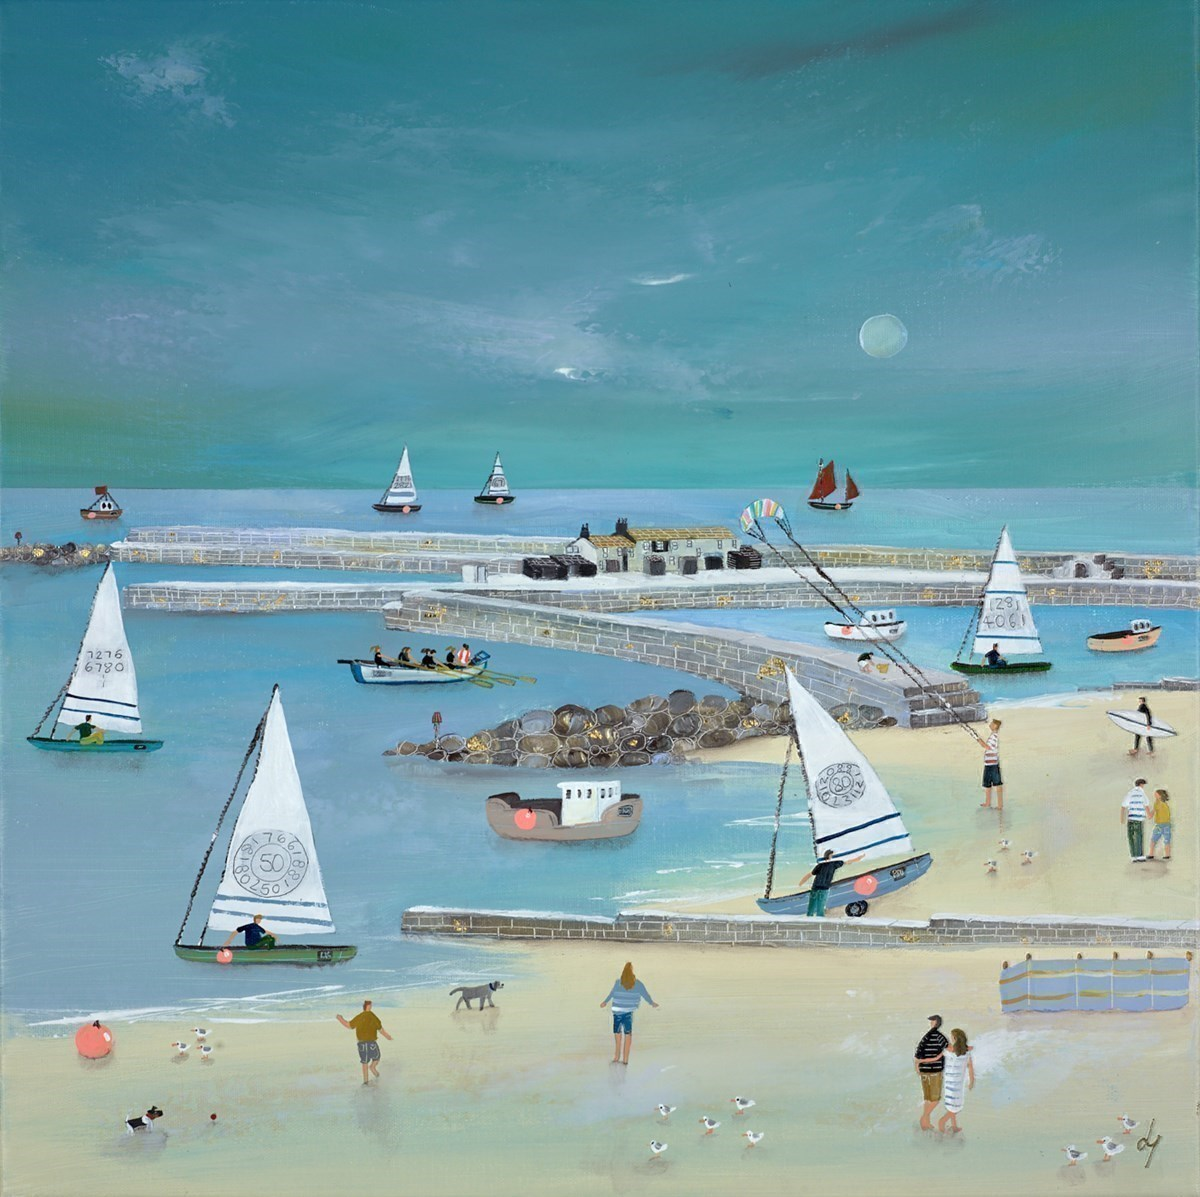 Gigging 'n' Sails by Lucy Young -  sized 20x20 inches. Available from Whitewall Galleries